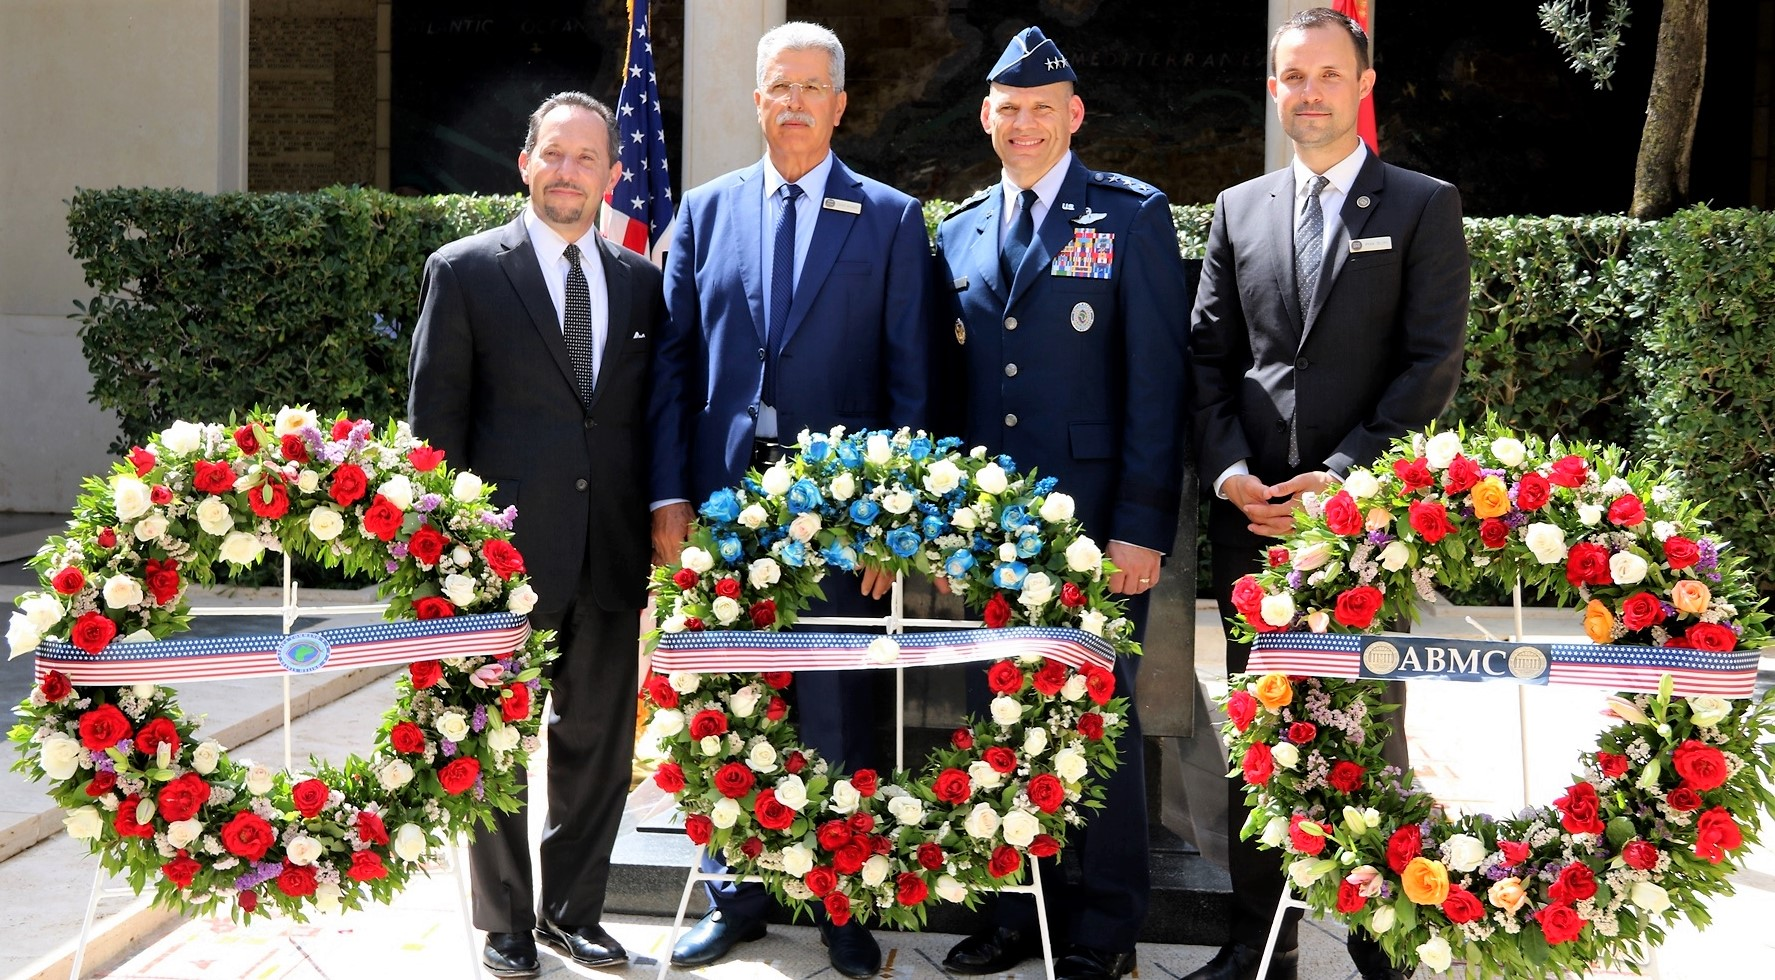 Left-Right: Amb. Daniel Rubinstein, U.S. Ambassador to Tunisia, Mr. Foued Bouaziz, Acting Superintendent, North Africa American Cemetery, U.S. Air Force Lt. Gen. James C. Vechery, Deputy to the Commander for Military Operations, U.S. Africa Command, and Mr. Ryan Blum, North Africa American Cemetery, honor America's fallen as part of the Memorial Day ceremony in Carthage, Tunisia, May 28, 2018. (Photo by Zouhaier SFAXI, U.S. Embassy Tunis)